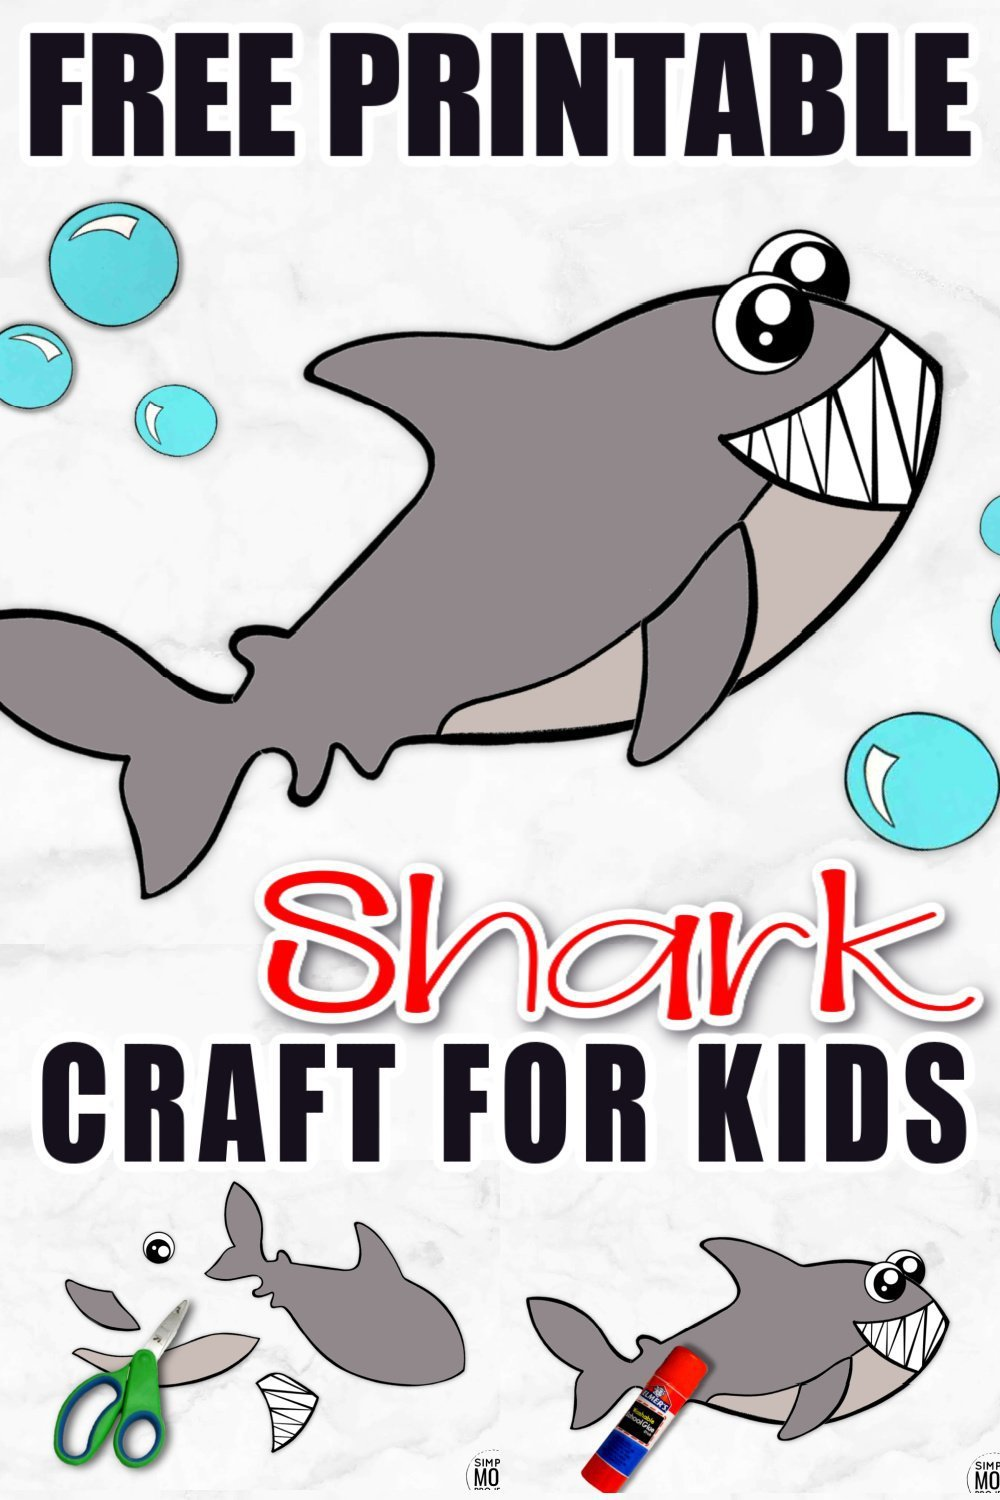 Looking for your next ocean animal craft? Click and get the adorable baby shark template! He is perfect for kids of all ages, especially preschoolers and toddlers. Use him during shark week too! You won't need any paper plate for this summer craft! Just try not to get the doodoo baby shark song stuck in your head! #sharkcraft #sharkweek #oceananimals #oceananimalcrafts #SimpleMomProject